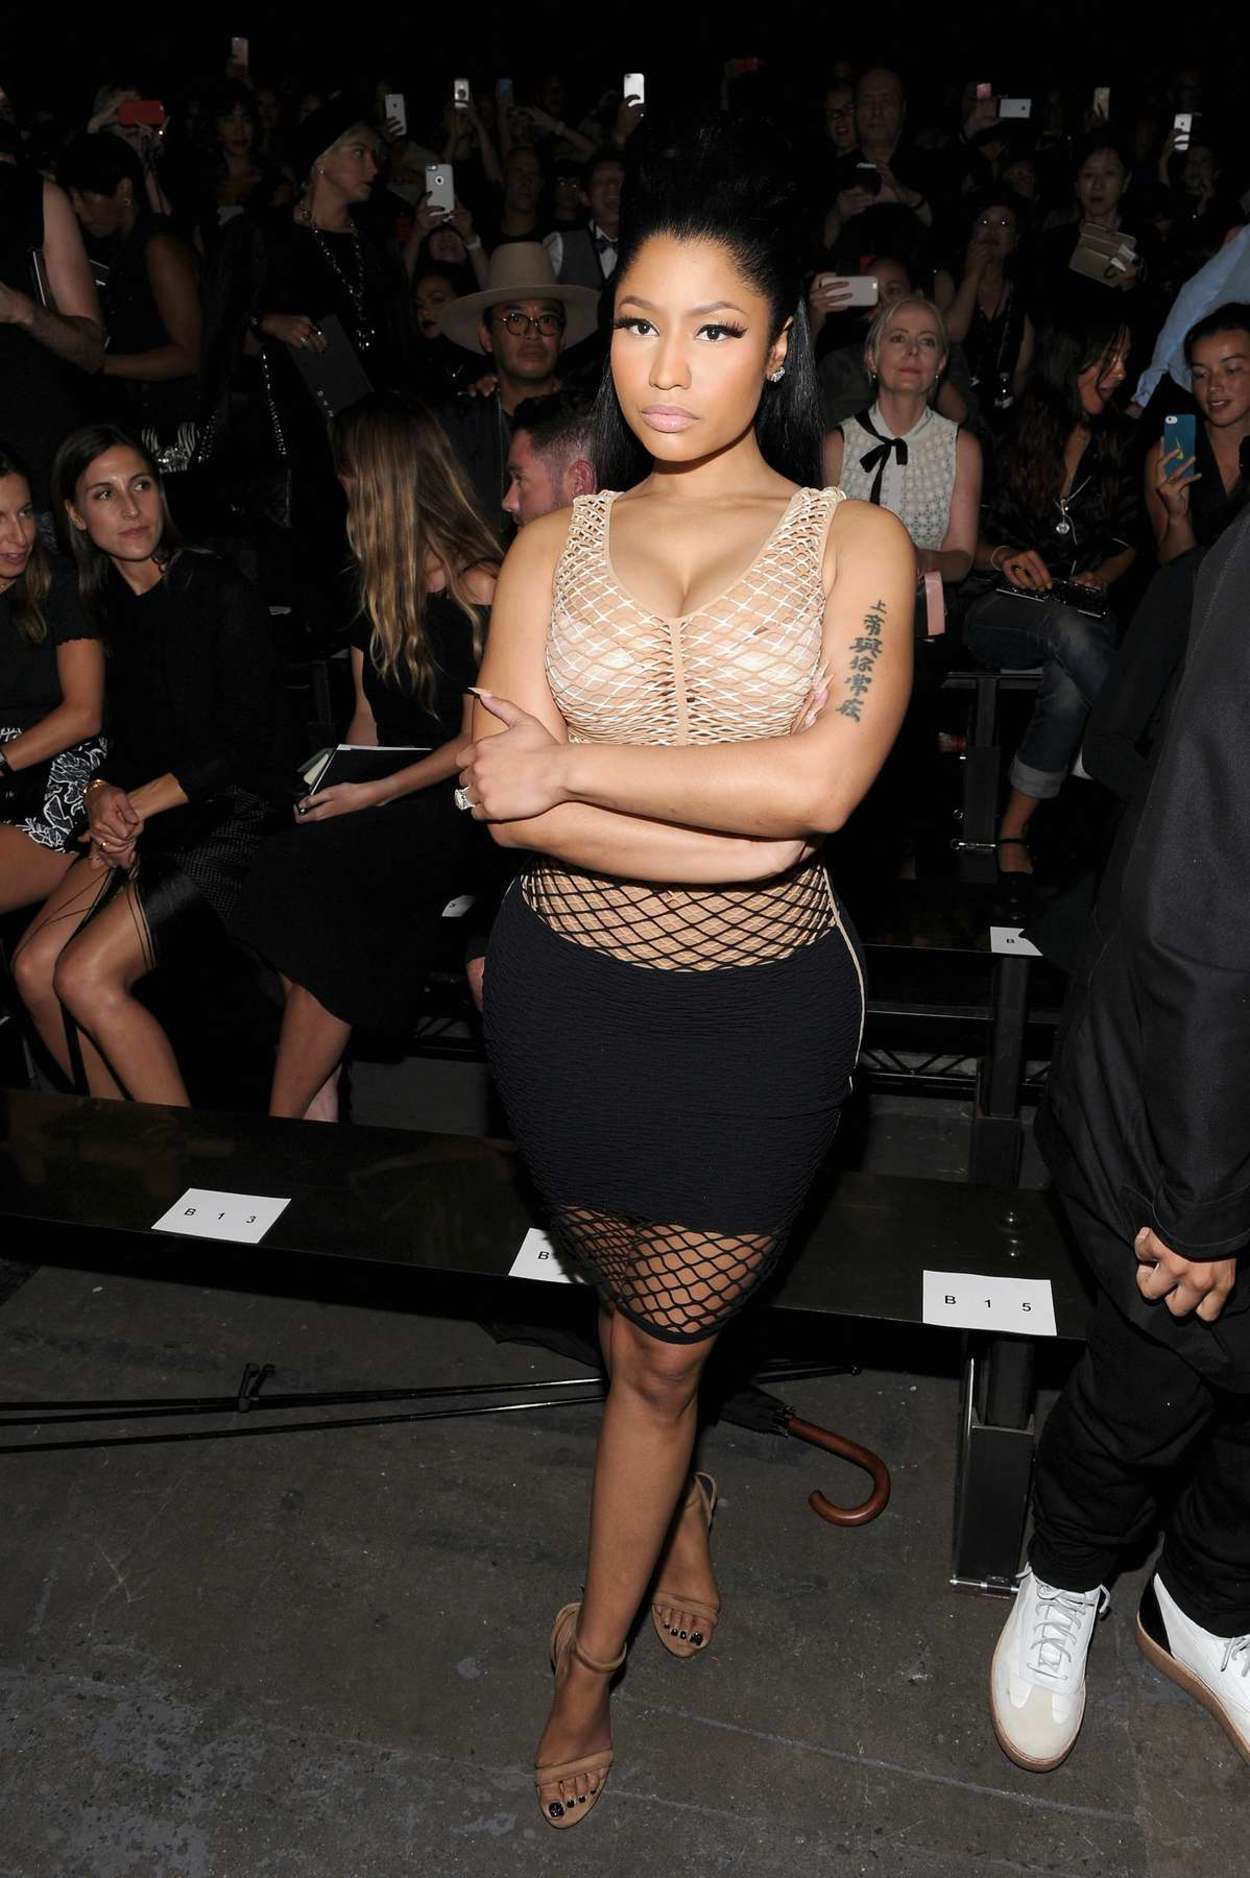 Nicki minaj alexander wang fashion show spring 2016 nyfw in nyc indian girls villa celebs Nicki minaj fashion style 2016